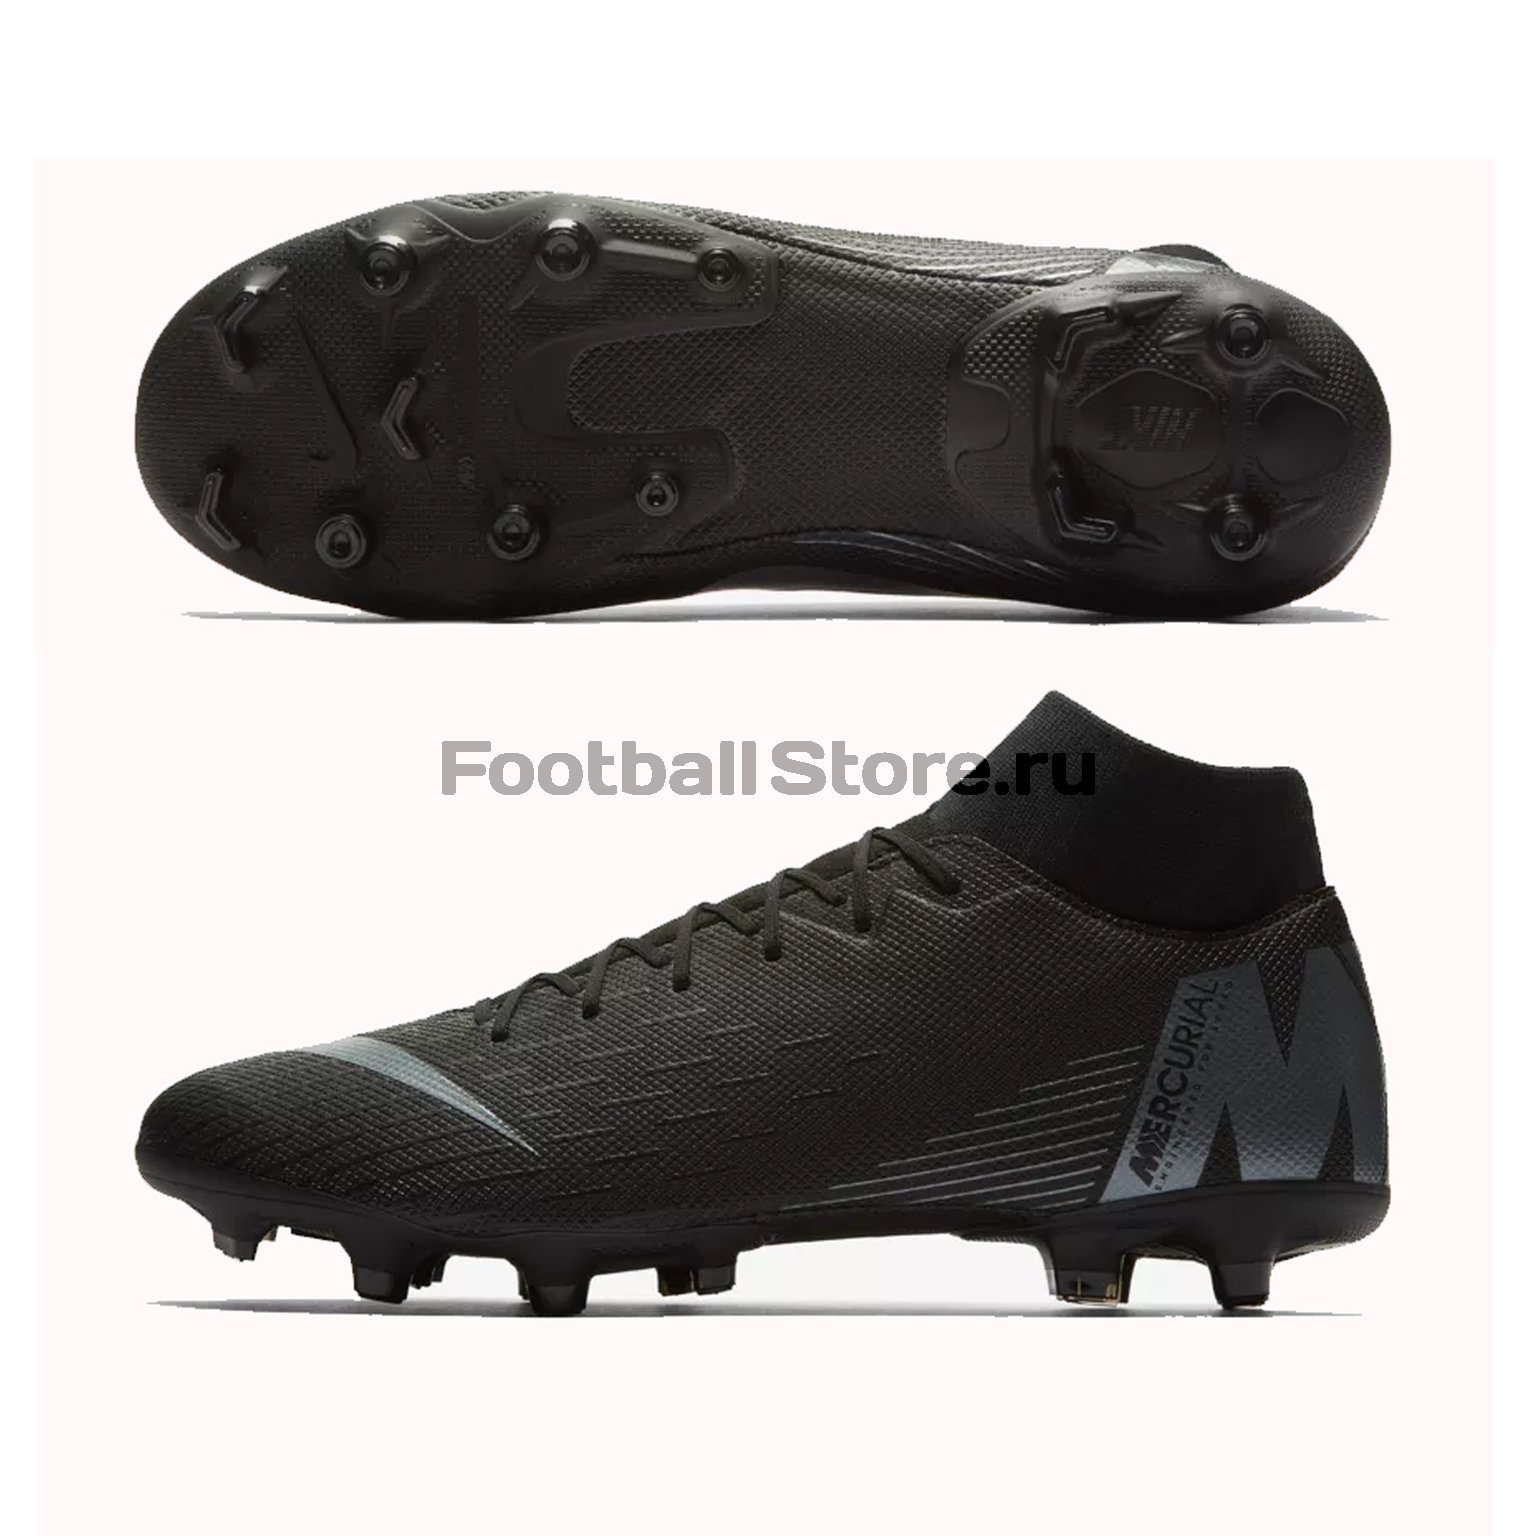 Бутсы Nike Superfly 6 Academy FG/MG AH7362-001 бутсы детские nike superfly academy gs cr7 fg mg aj3111 600